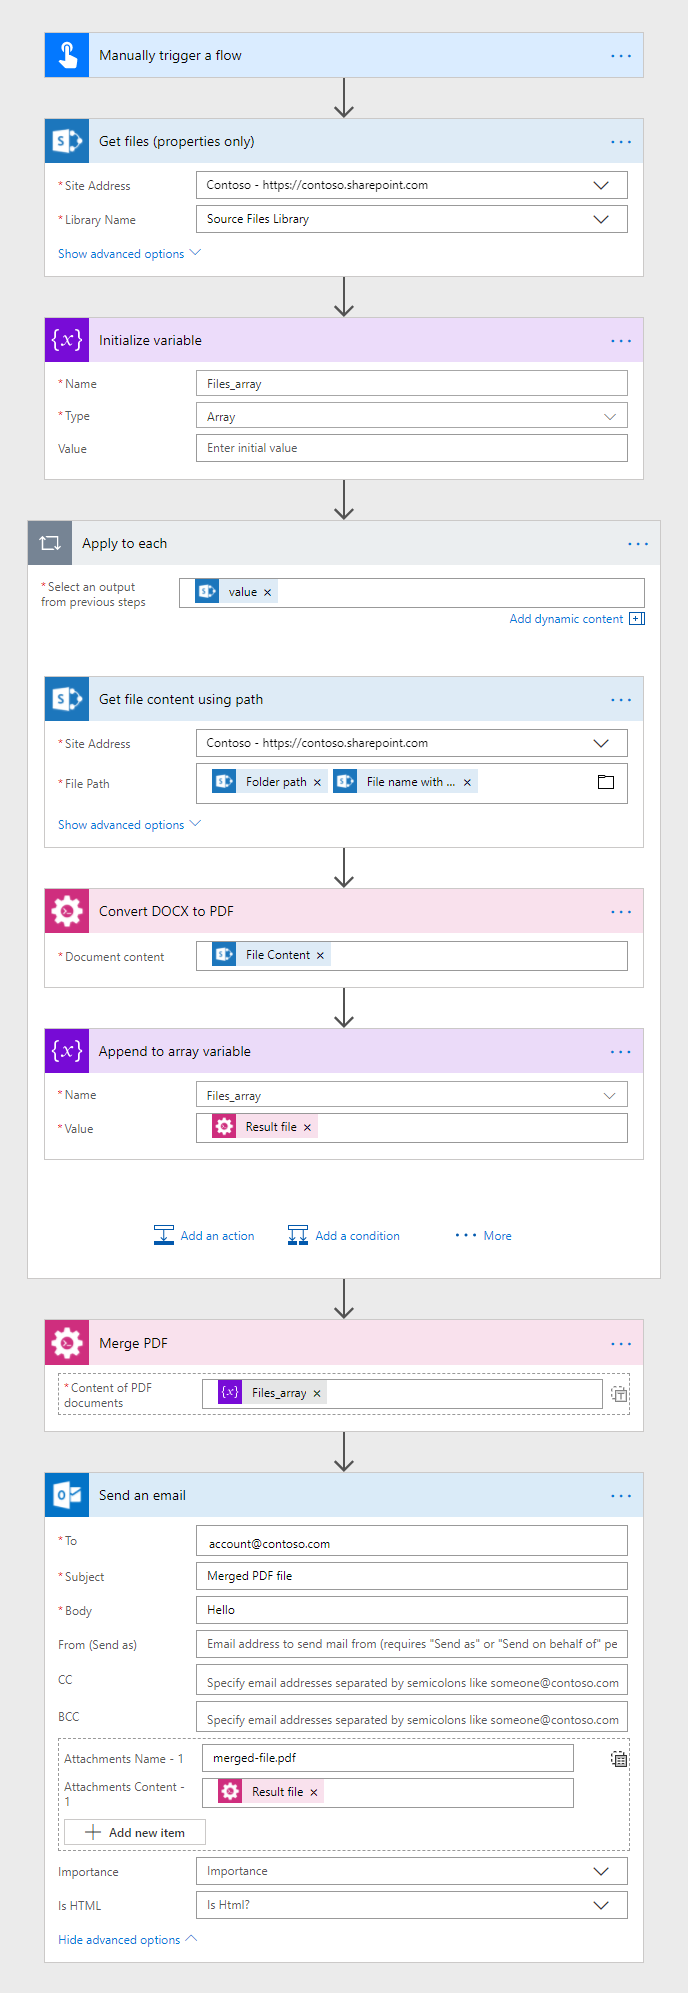 How to merge and split PDF files in Microsoft Flow, Azure Logic Apps